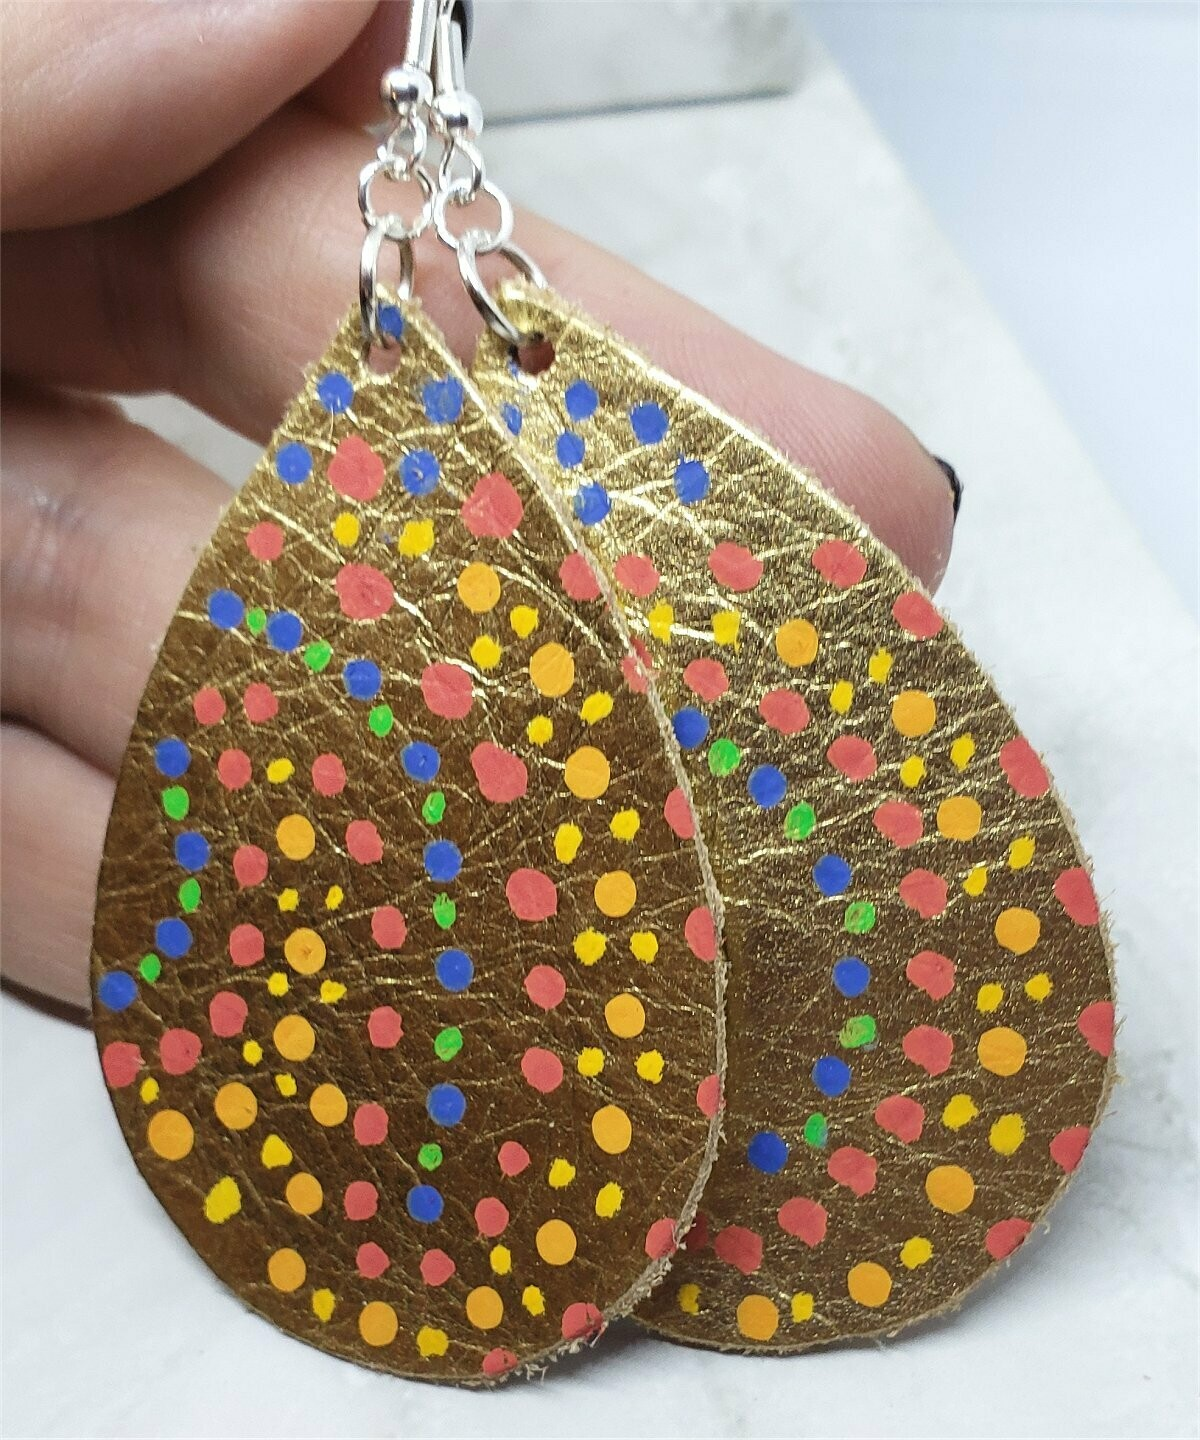 Aboriginal Style Dot Art Hand Painted Real Leather Metallic Gold Teardrop Shaped Earrings